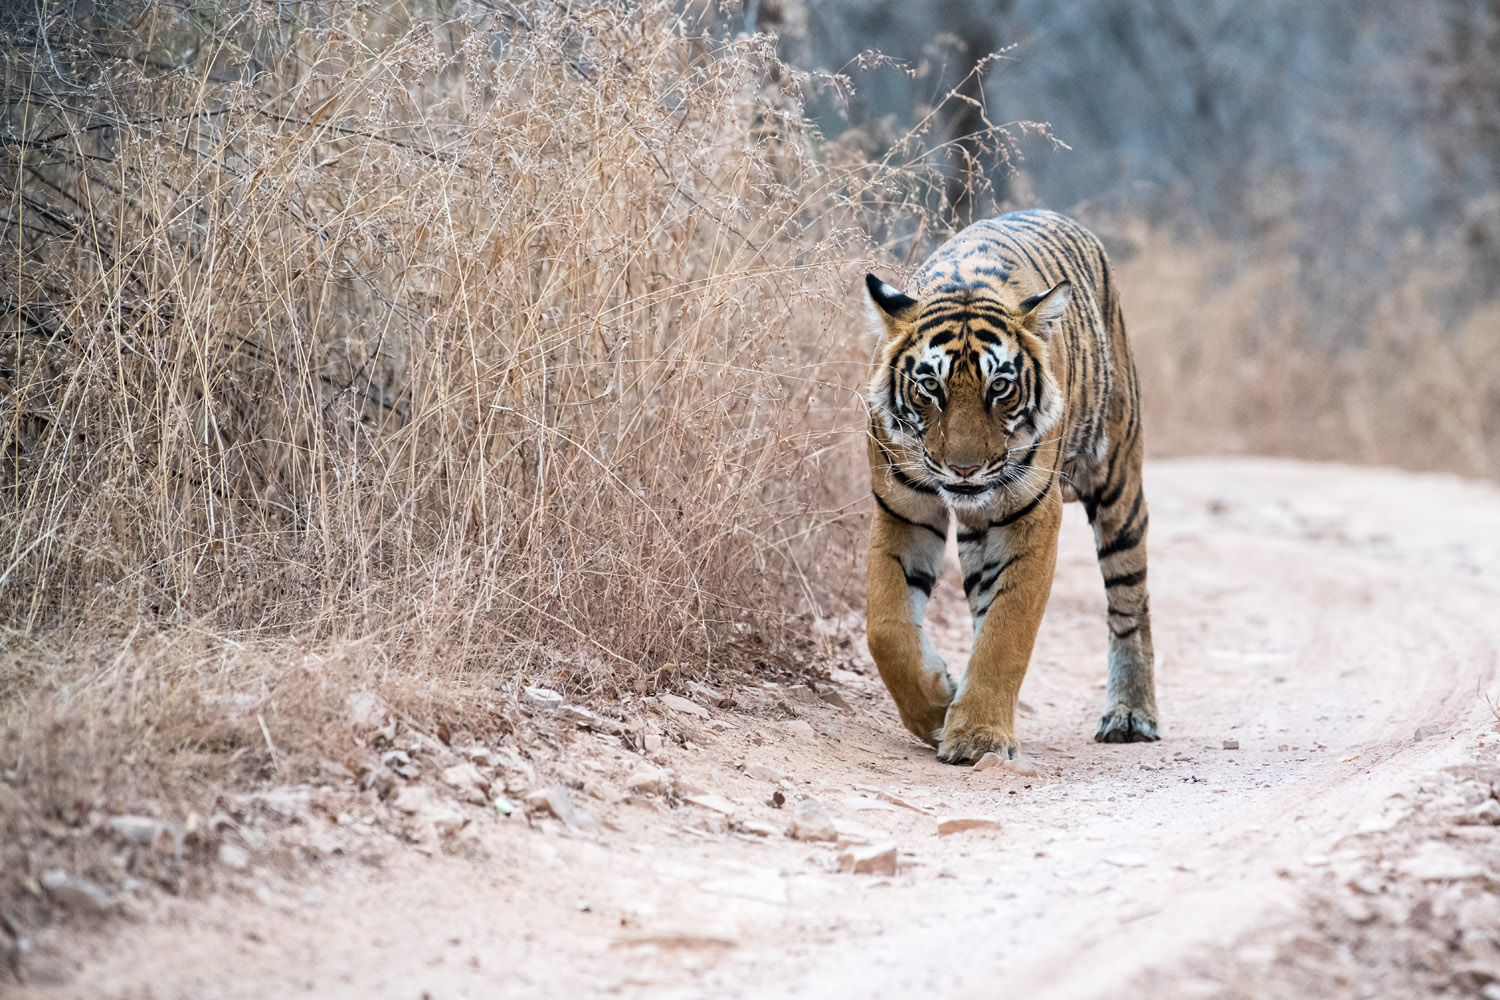 Bengal tigress walking along forest track, Ranthambhore National Park, Rajasthan, India